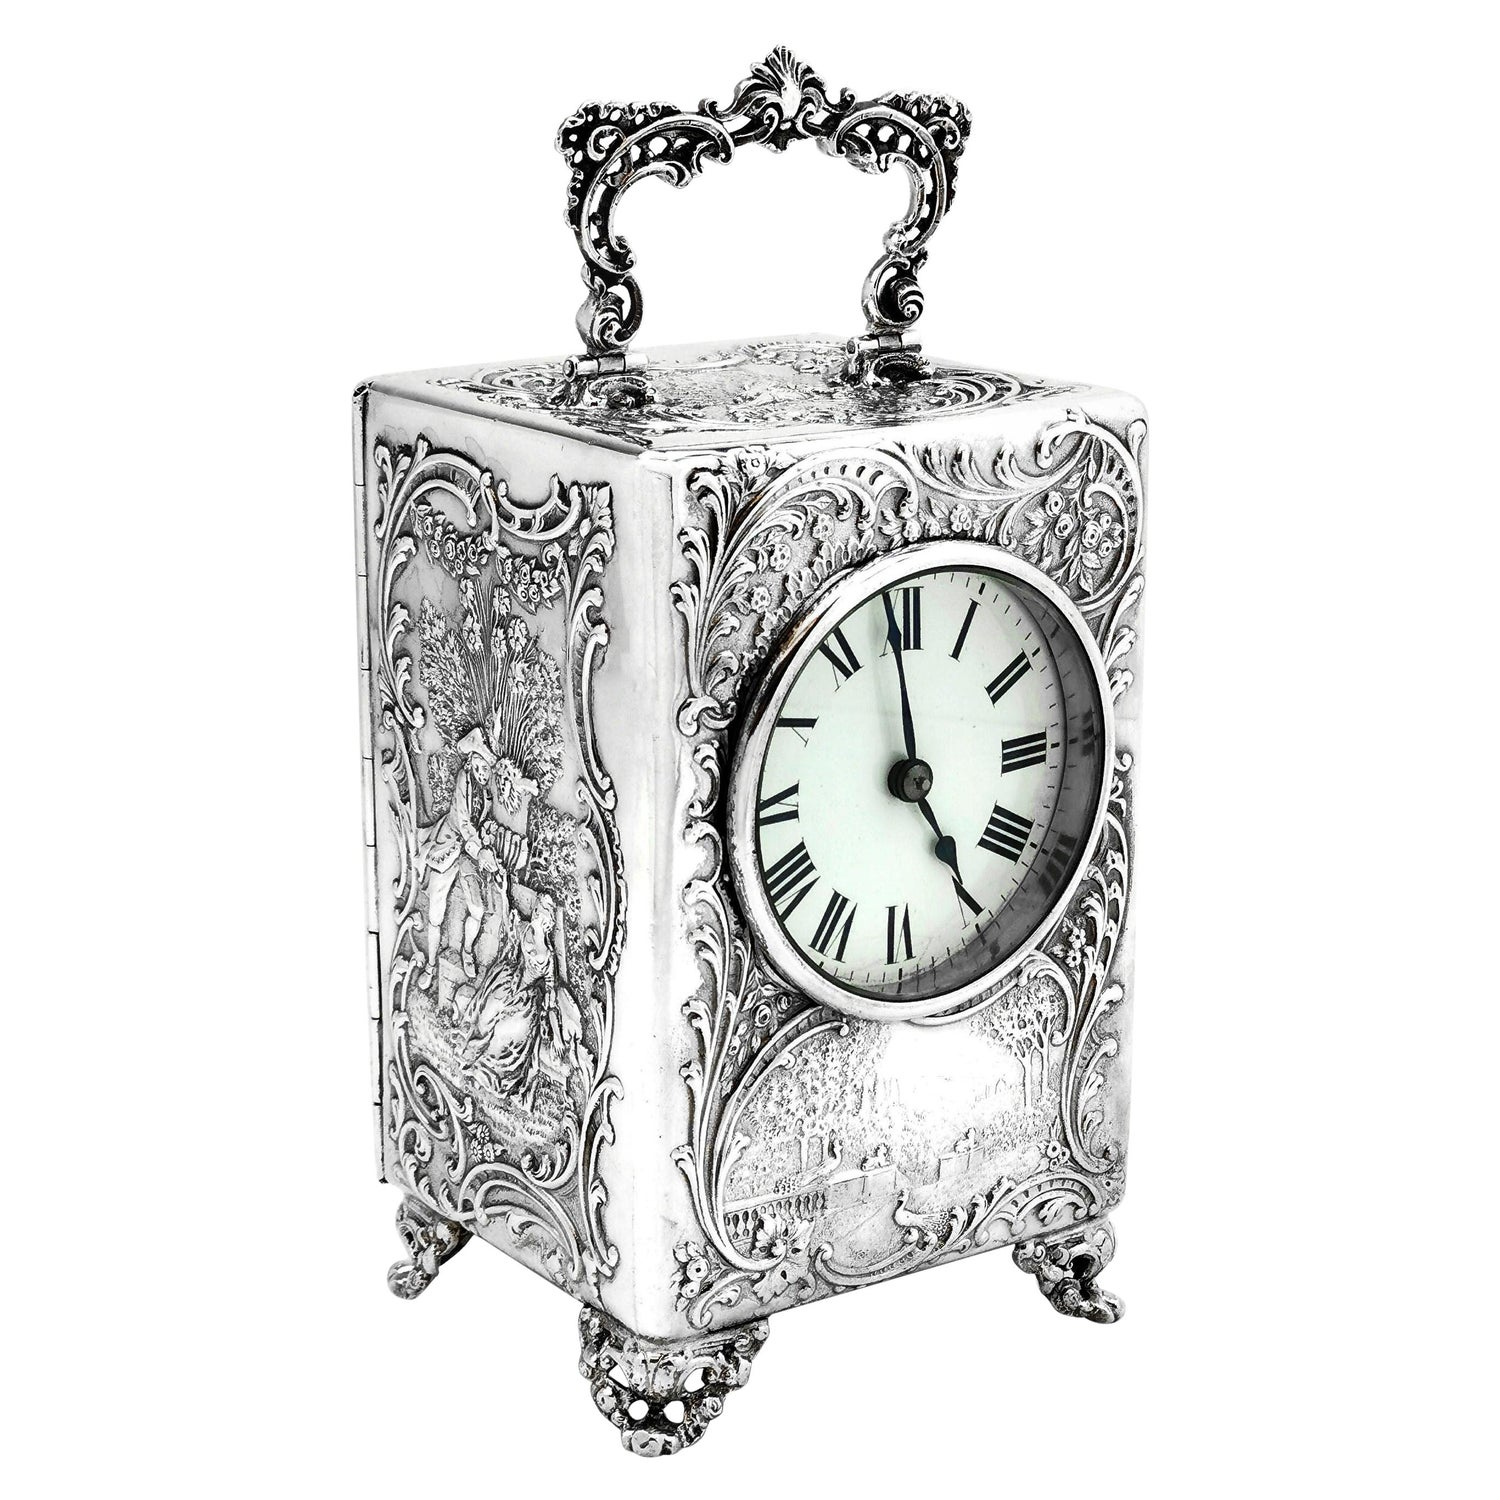 Antique Victorian Sterling Silver Mantle Carriage Clock, 1899